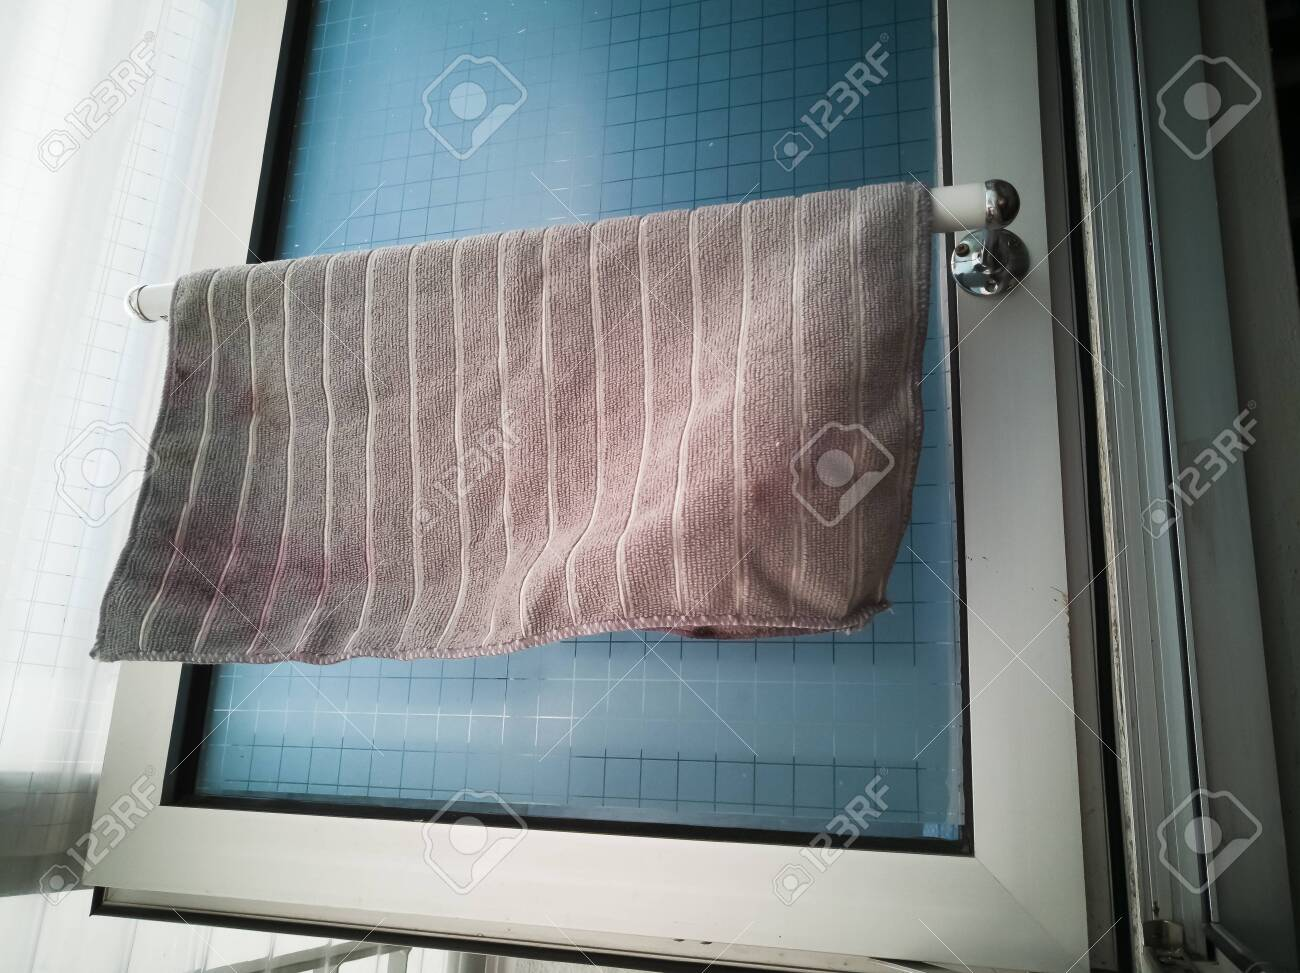 Kitchen Microfiber Cloth Drying At The Window Mounted Aluminium Stock Photo Picture And Royalty Free Image Image 146750229